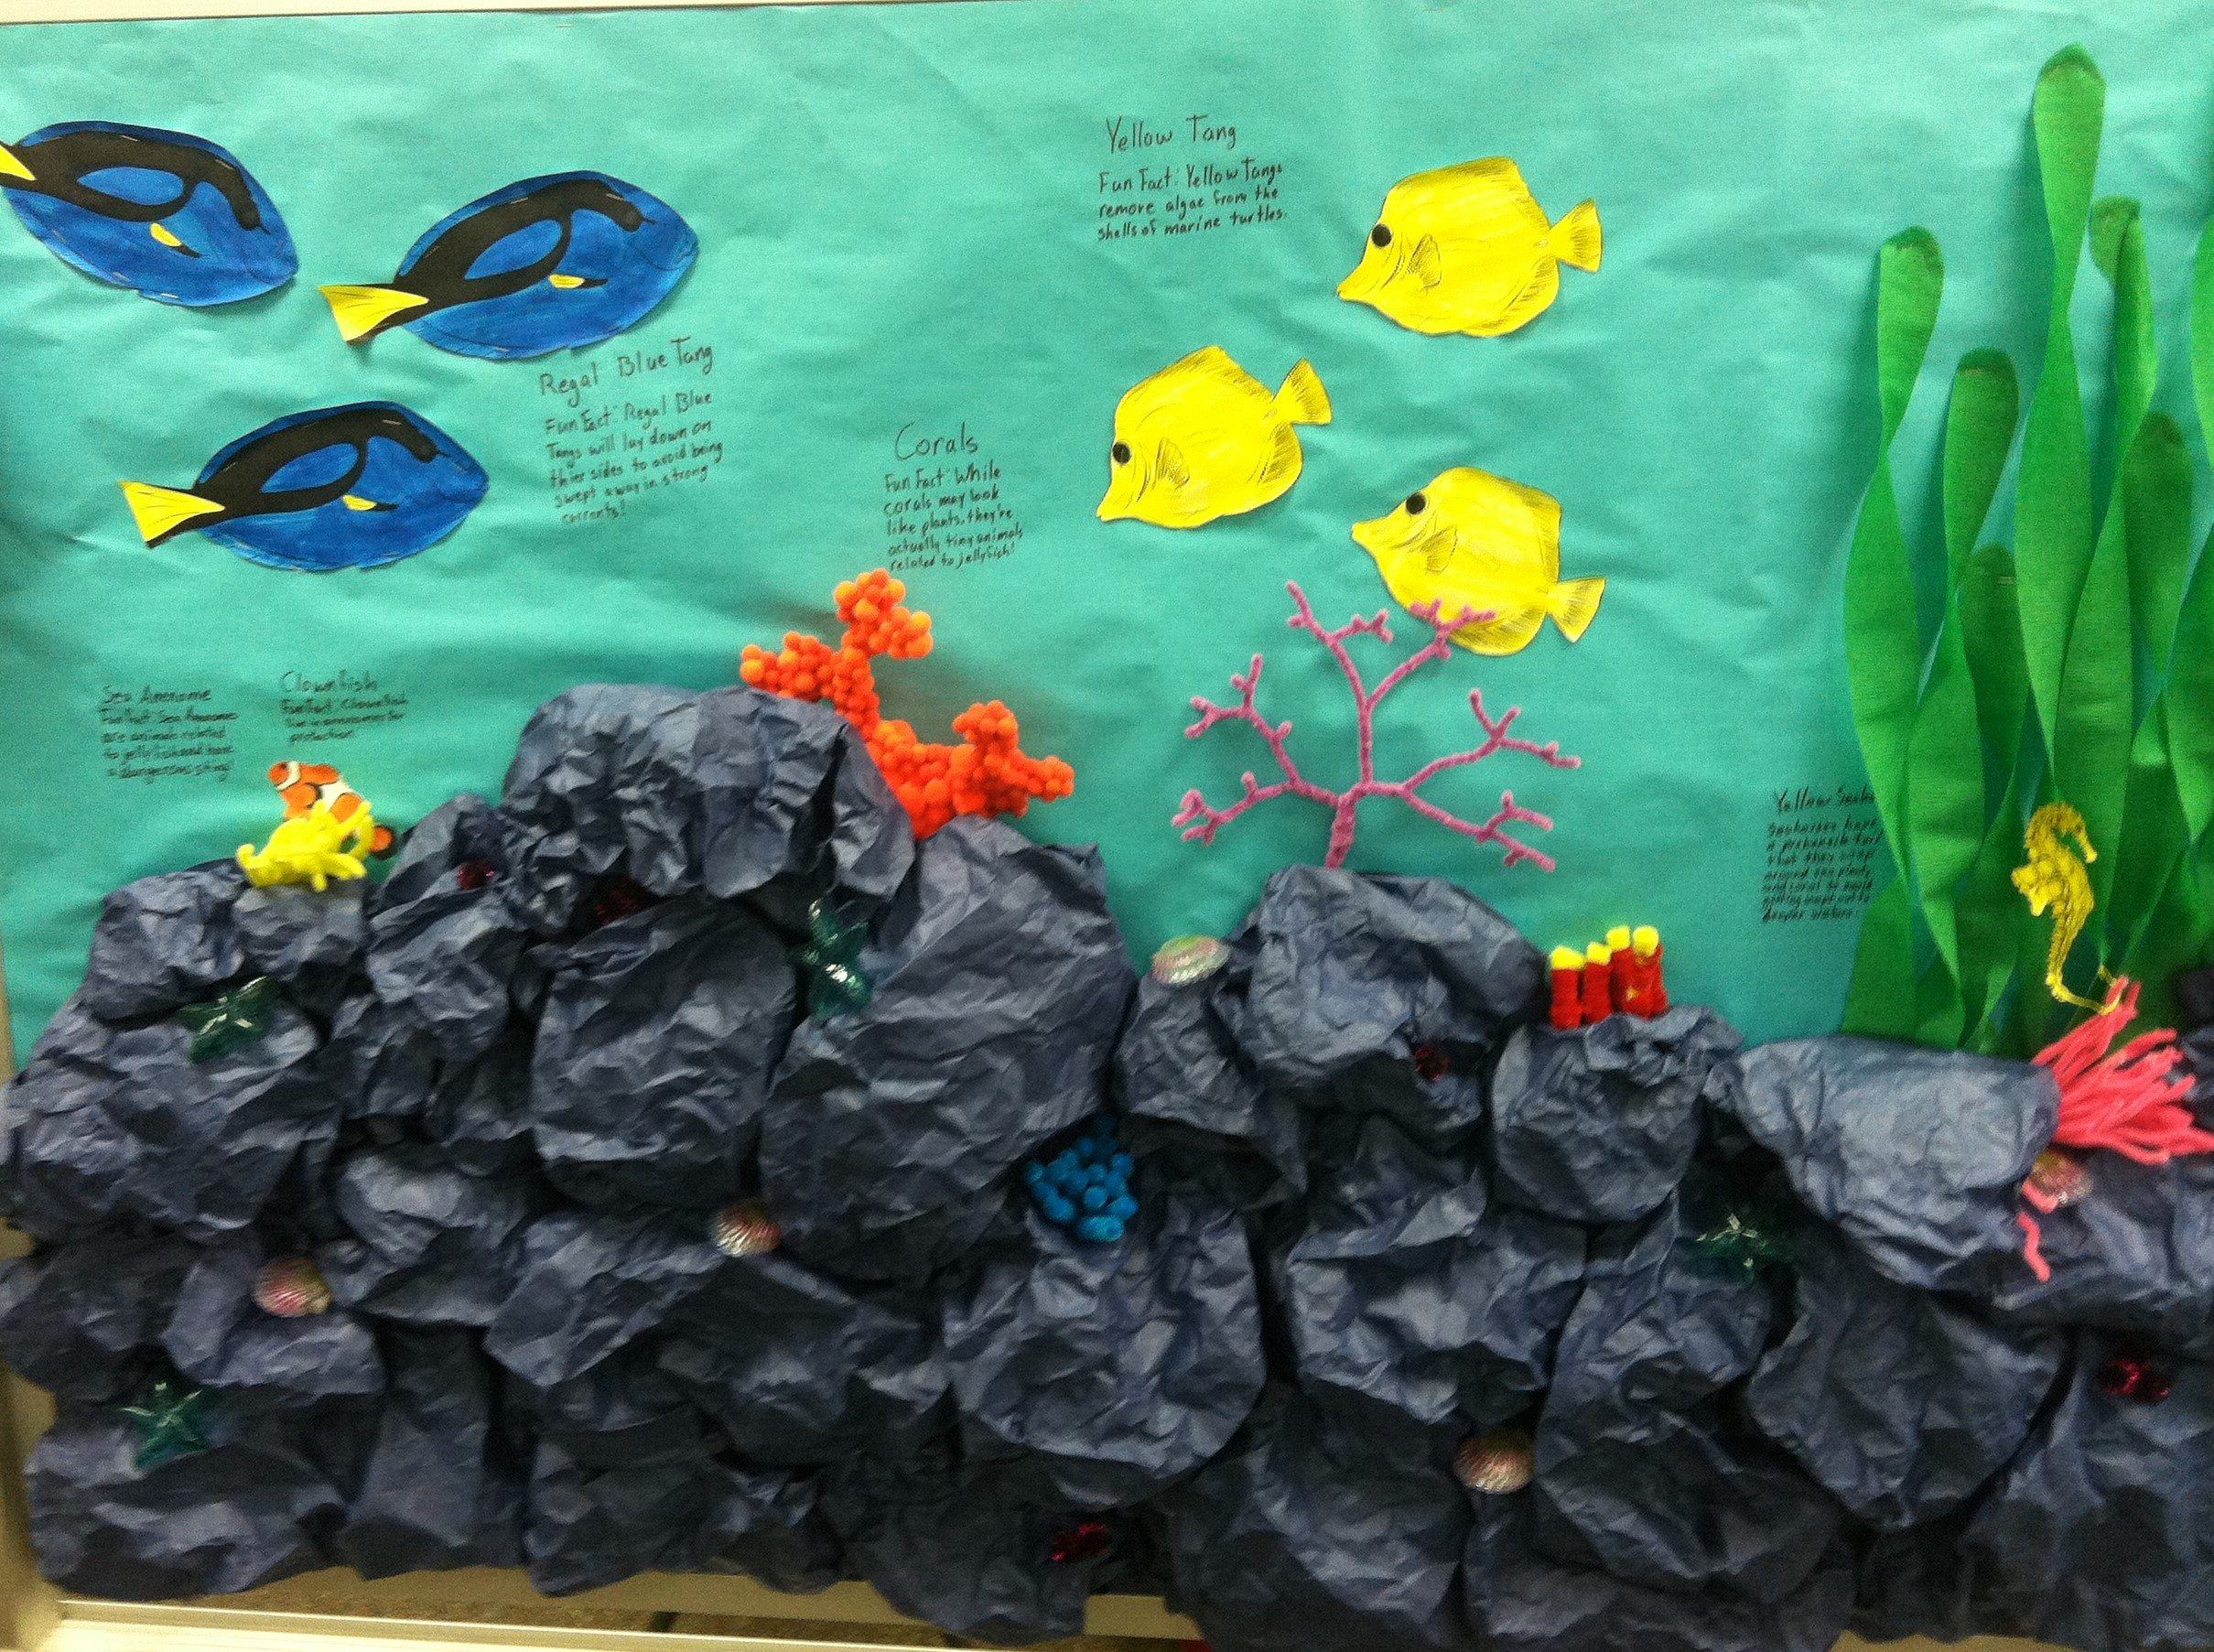 This isn't difficult to create at all. The coral is made of black paper that has been crumpled together. In fact, you can even use old paper from previous projects to create these looks. The seaweed is just a green streamer. The three dimensions of the coral really make it pop out. Teachers and students will really enjoy what you have made.